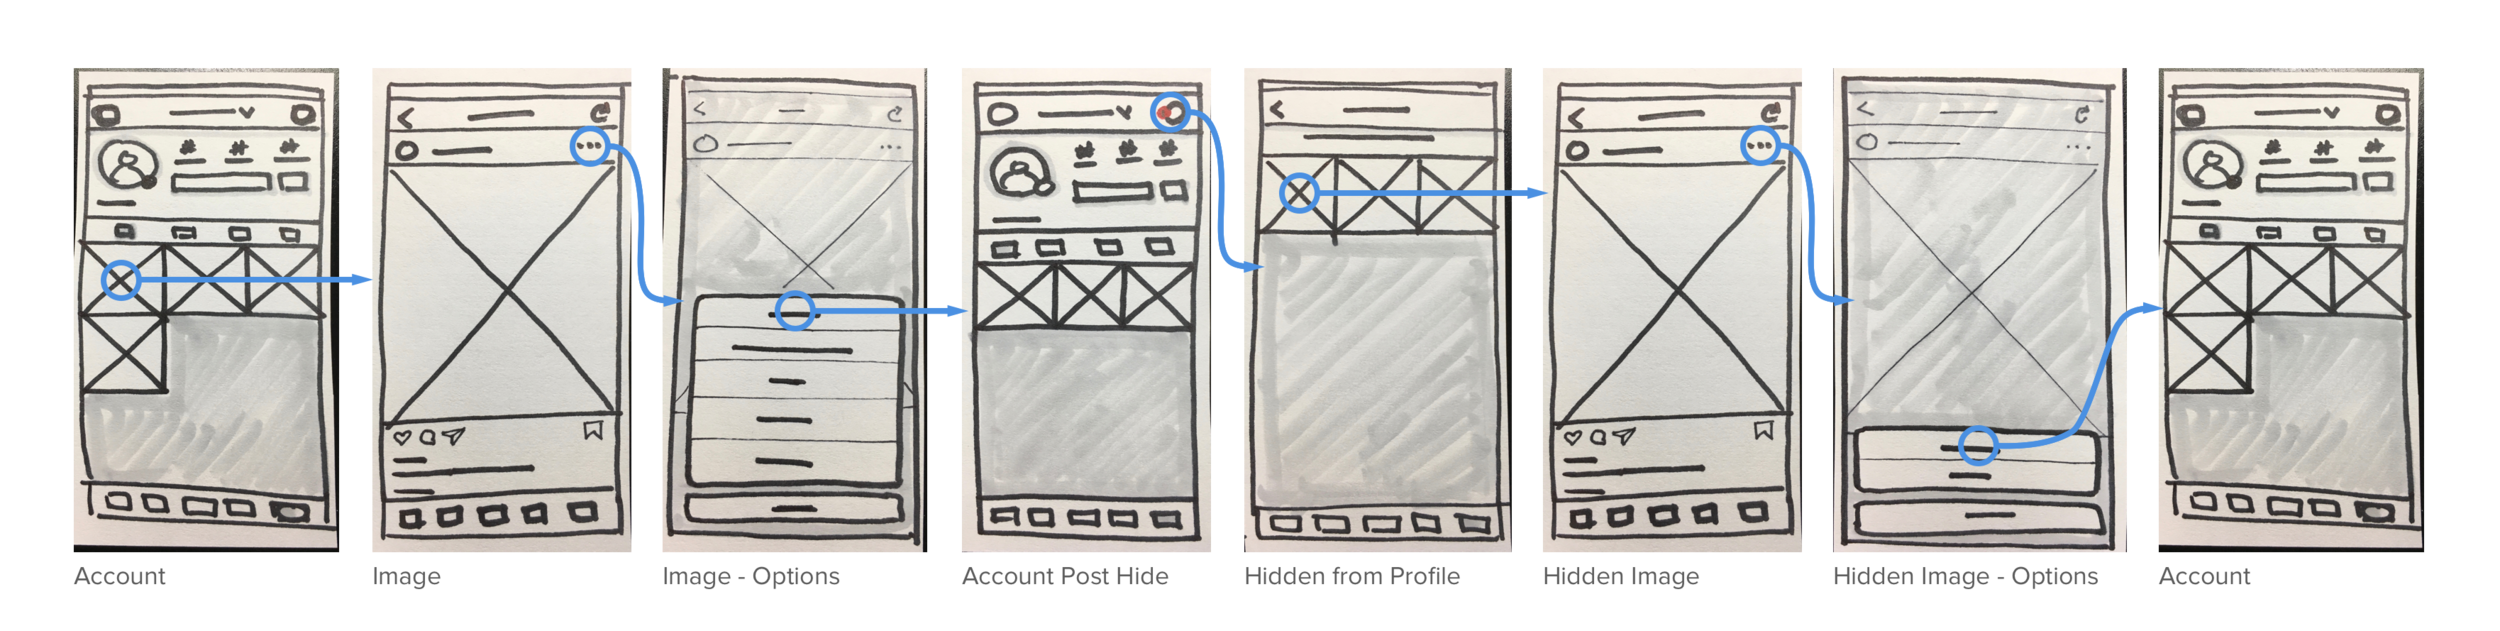 UI sketches and user flow